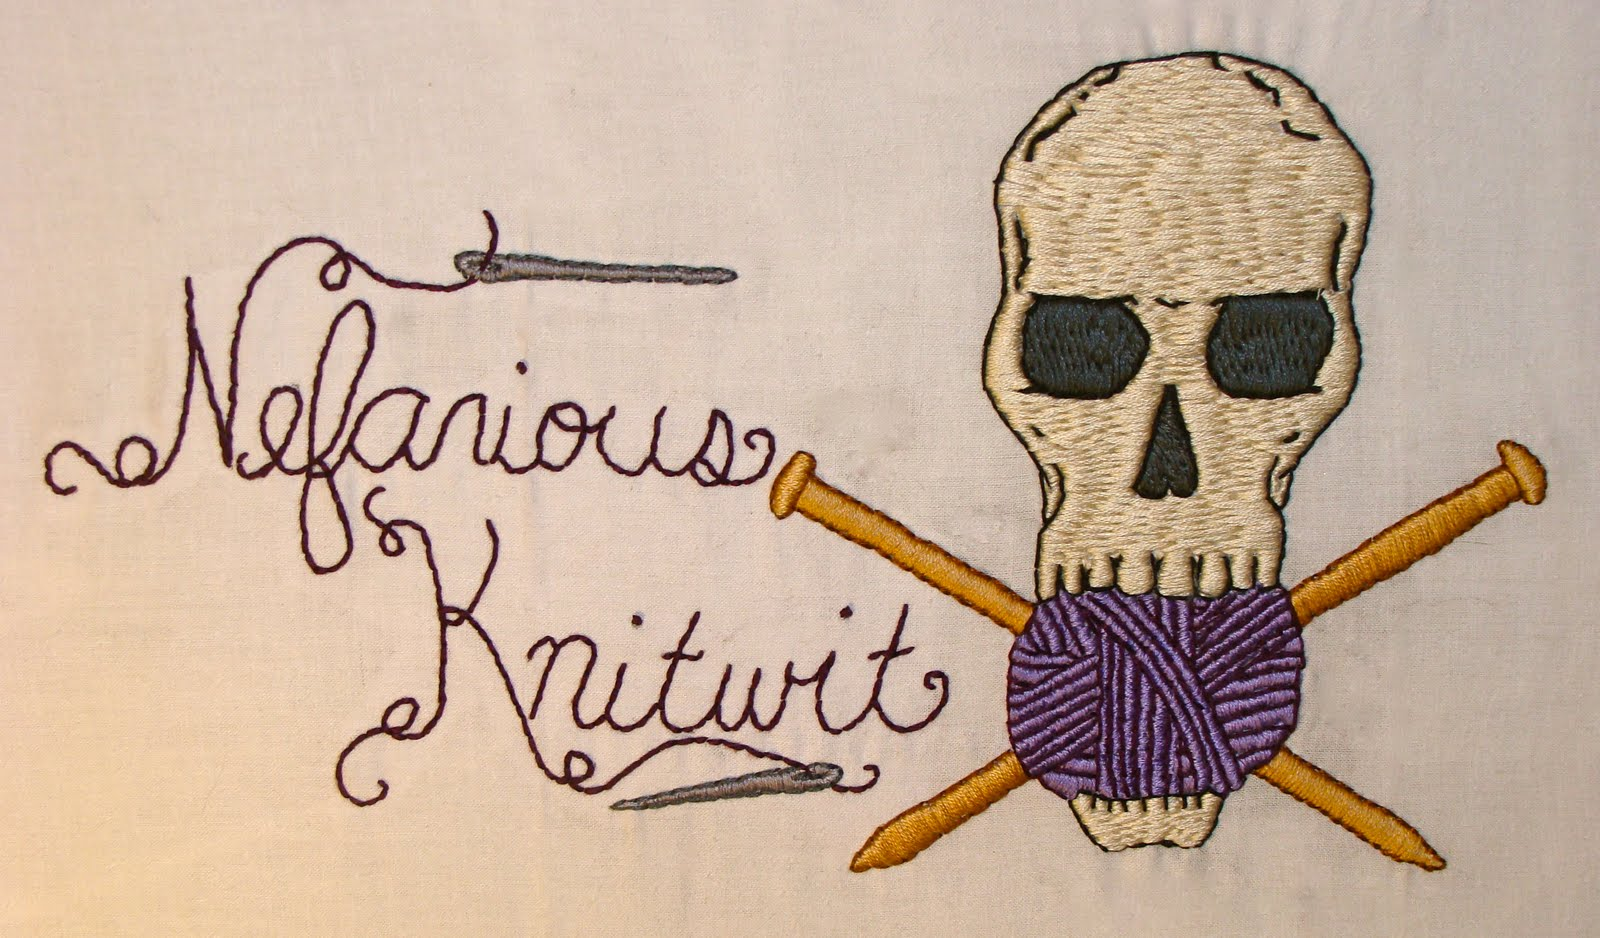 Nefarious KnitWit